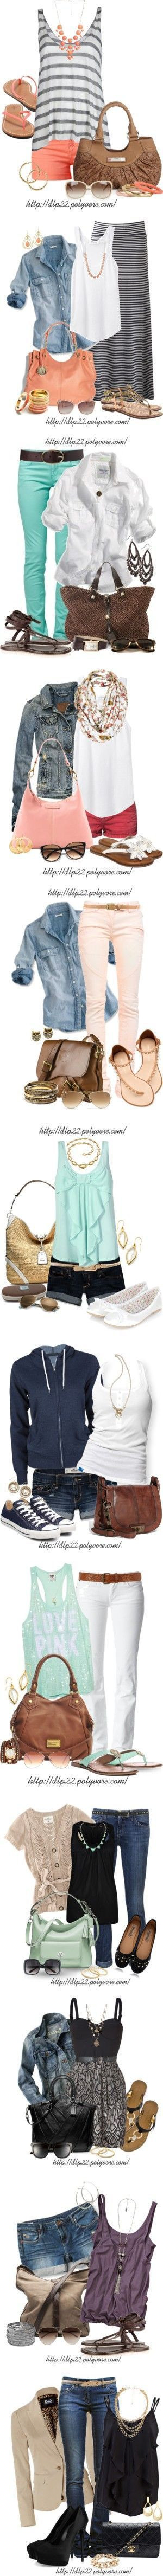 d9b53ad60800c690dd8379a1237ae850 - Summer vacations in Nevada 10 best outfits to wear